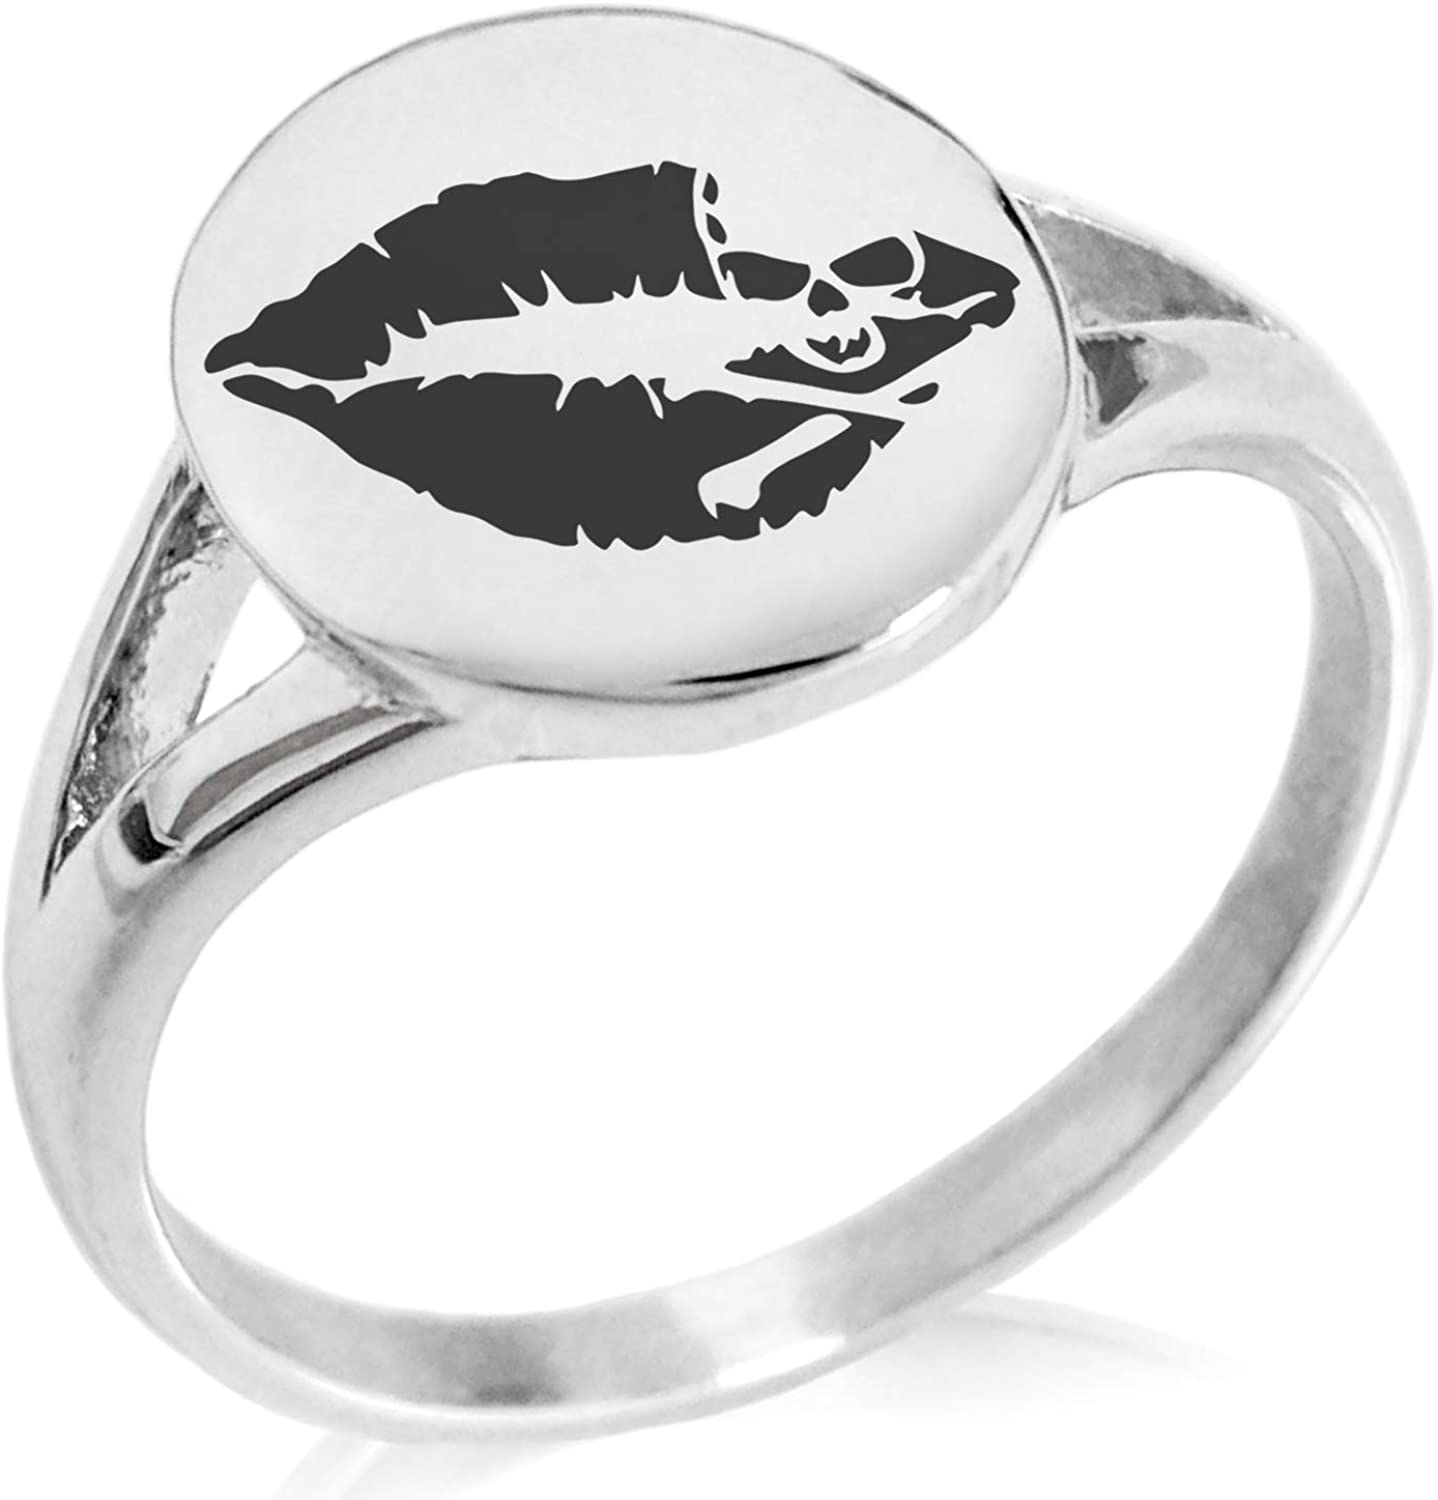 Tioneer Stainless Steel Skull & Crossbones Kiss of Death Minimalist Oval Top Polished Statement Ring